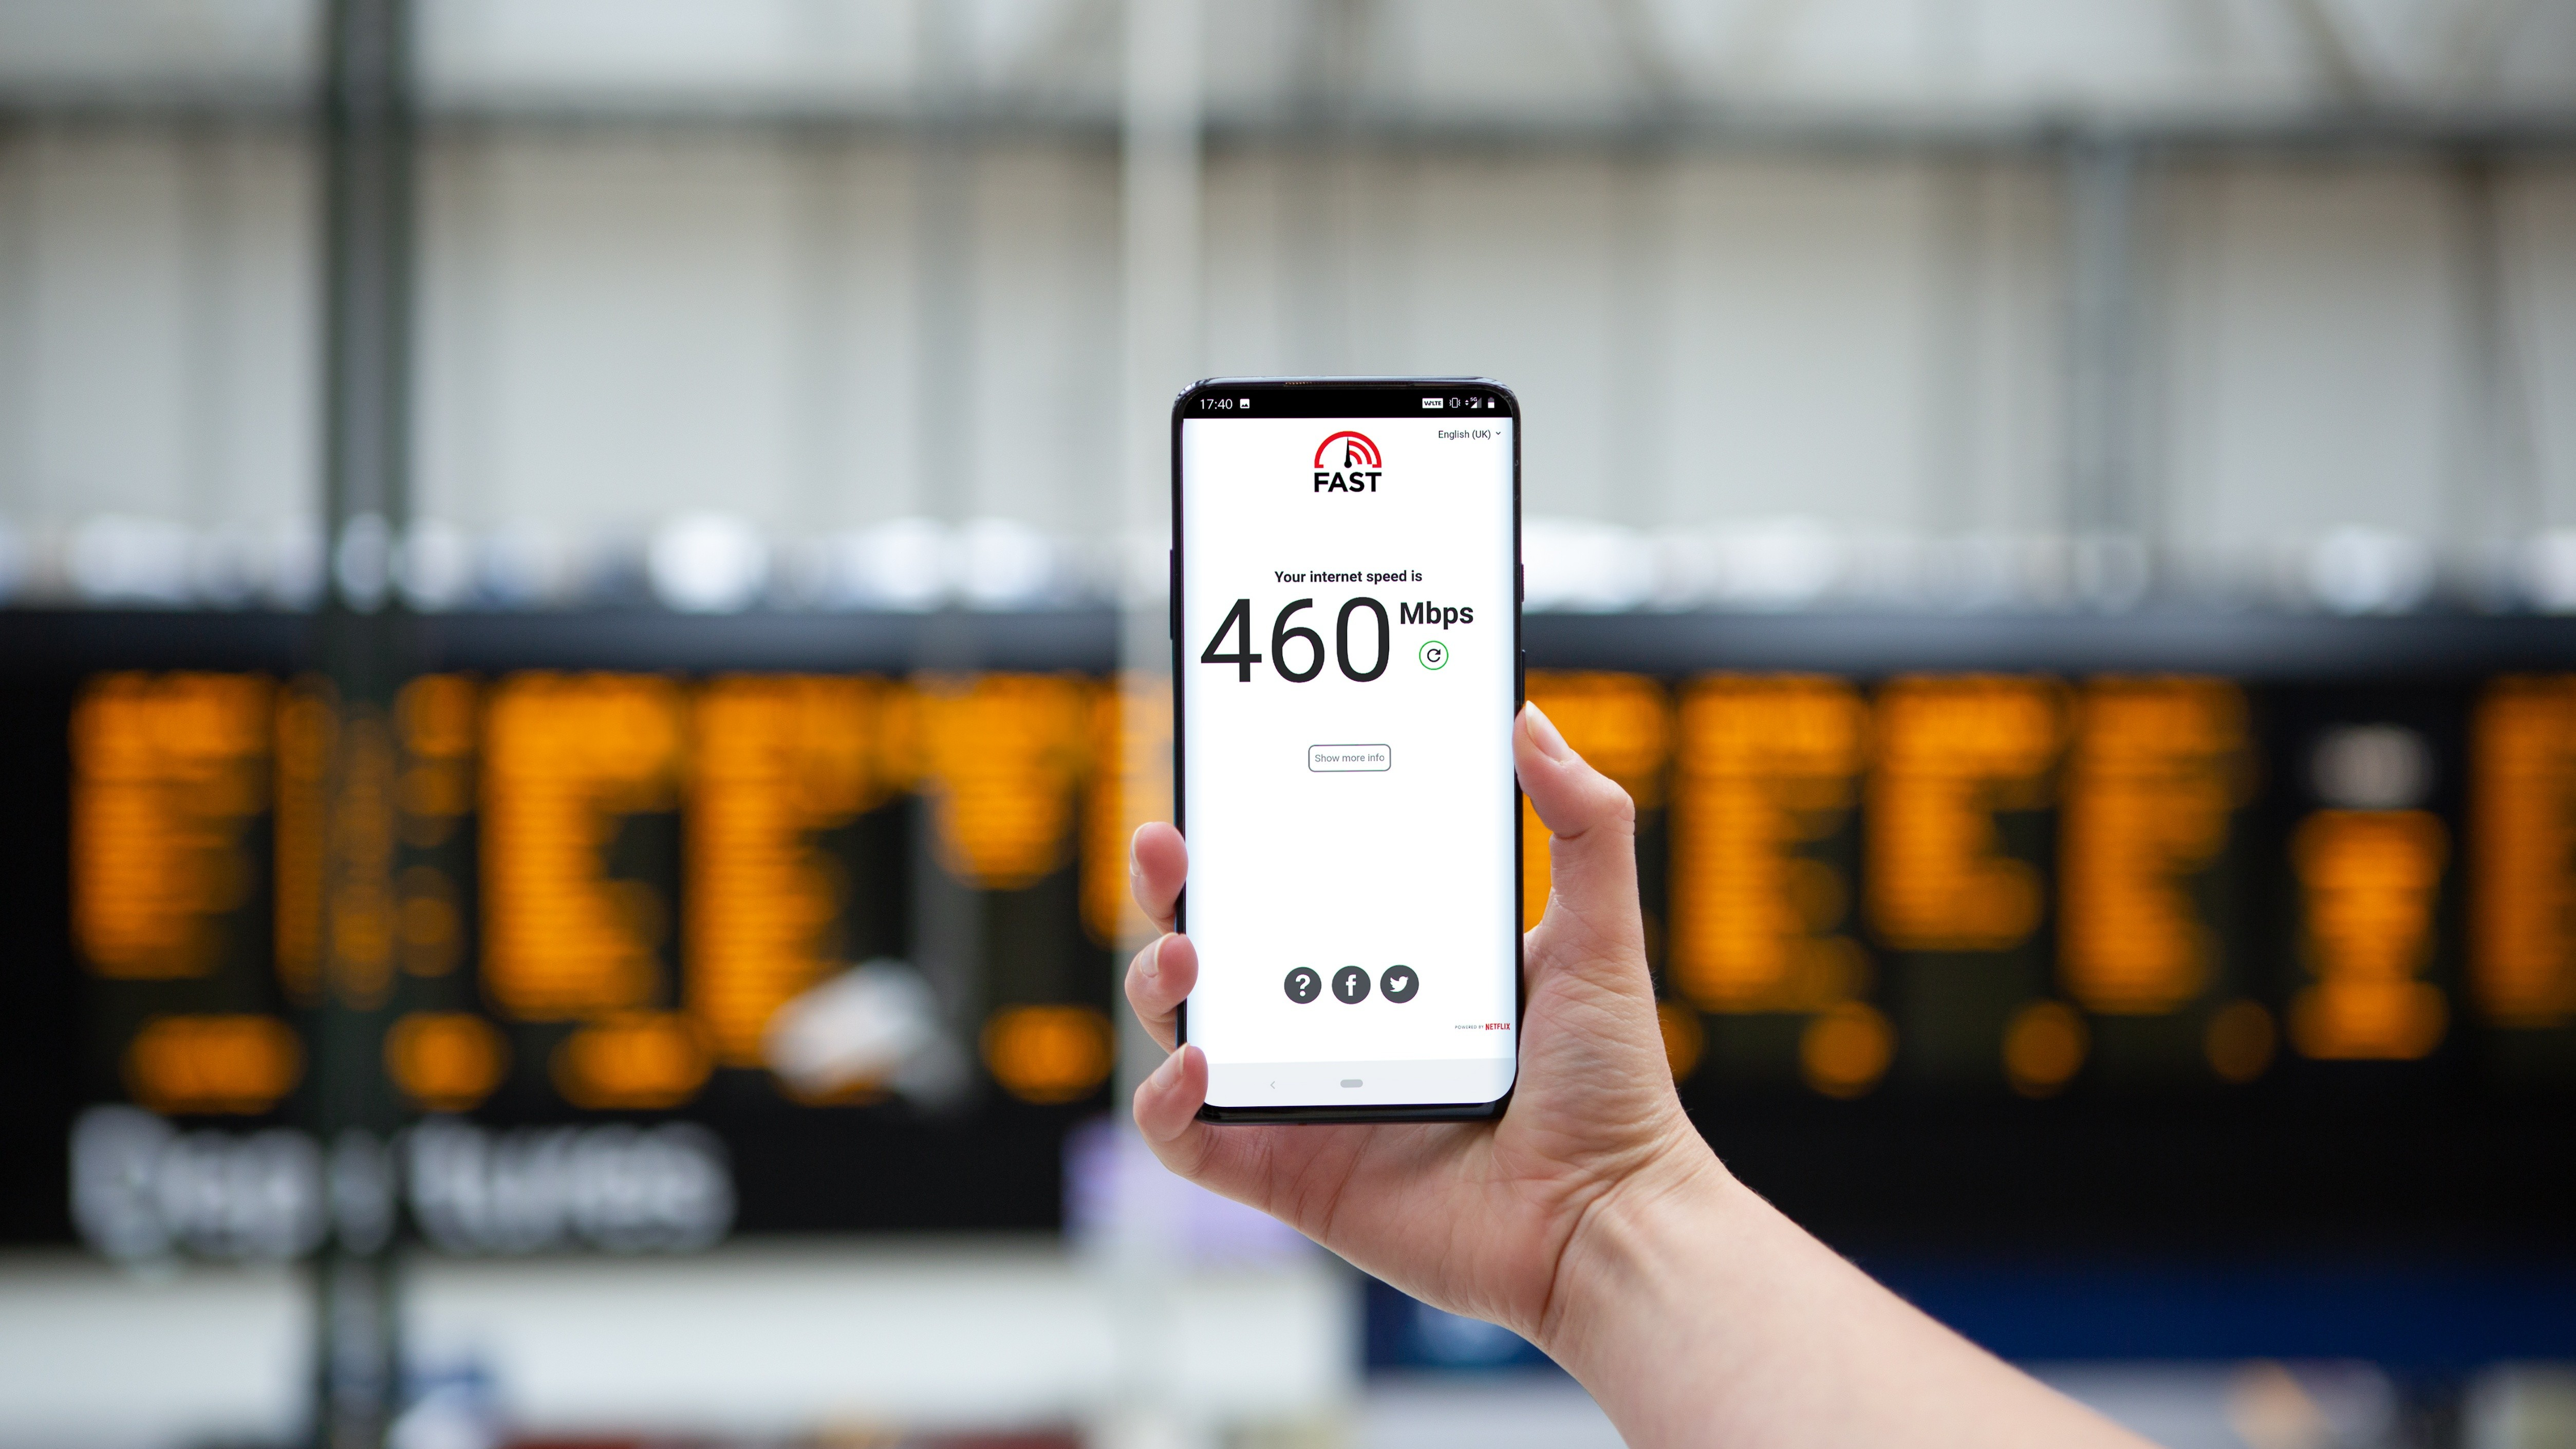 Ee Expands Its 5g Network Across Several Major Locations In